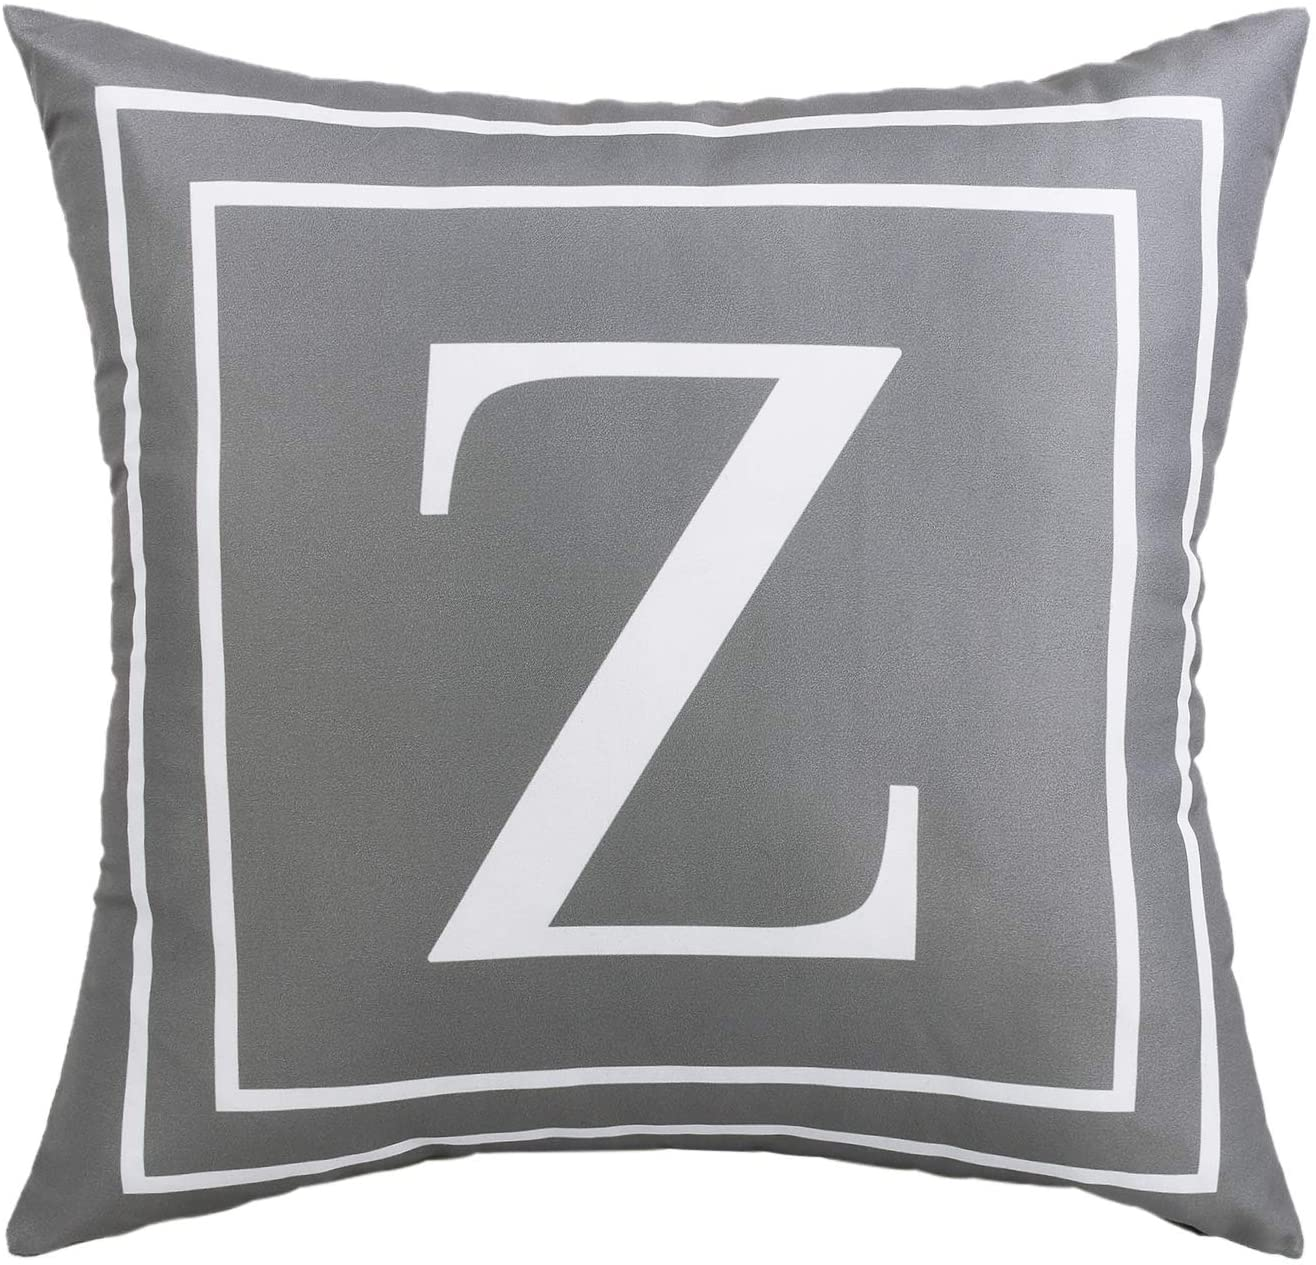 ASPMIZ Throw Pillow Covers English Alphabet Z Pillow Covers, Initial Pillowcases Gray Letter Throw Pillow Covers, Decorative Cushion Cover for Bed Bedroom Couch Sofa (Gray, 18 x 18 inch)